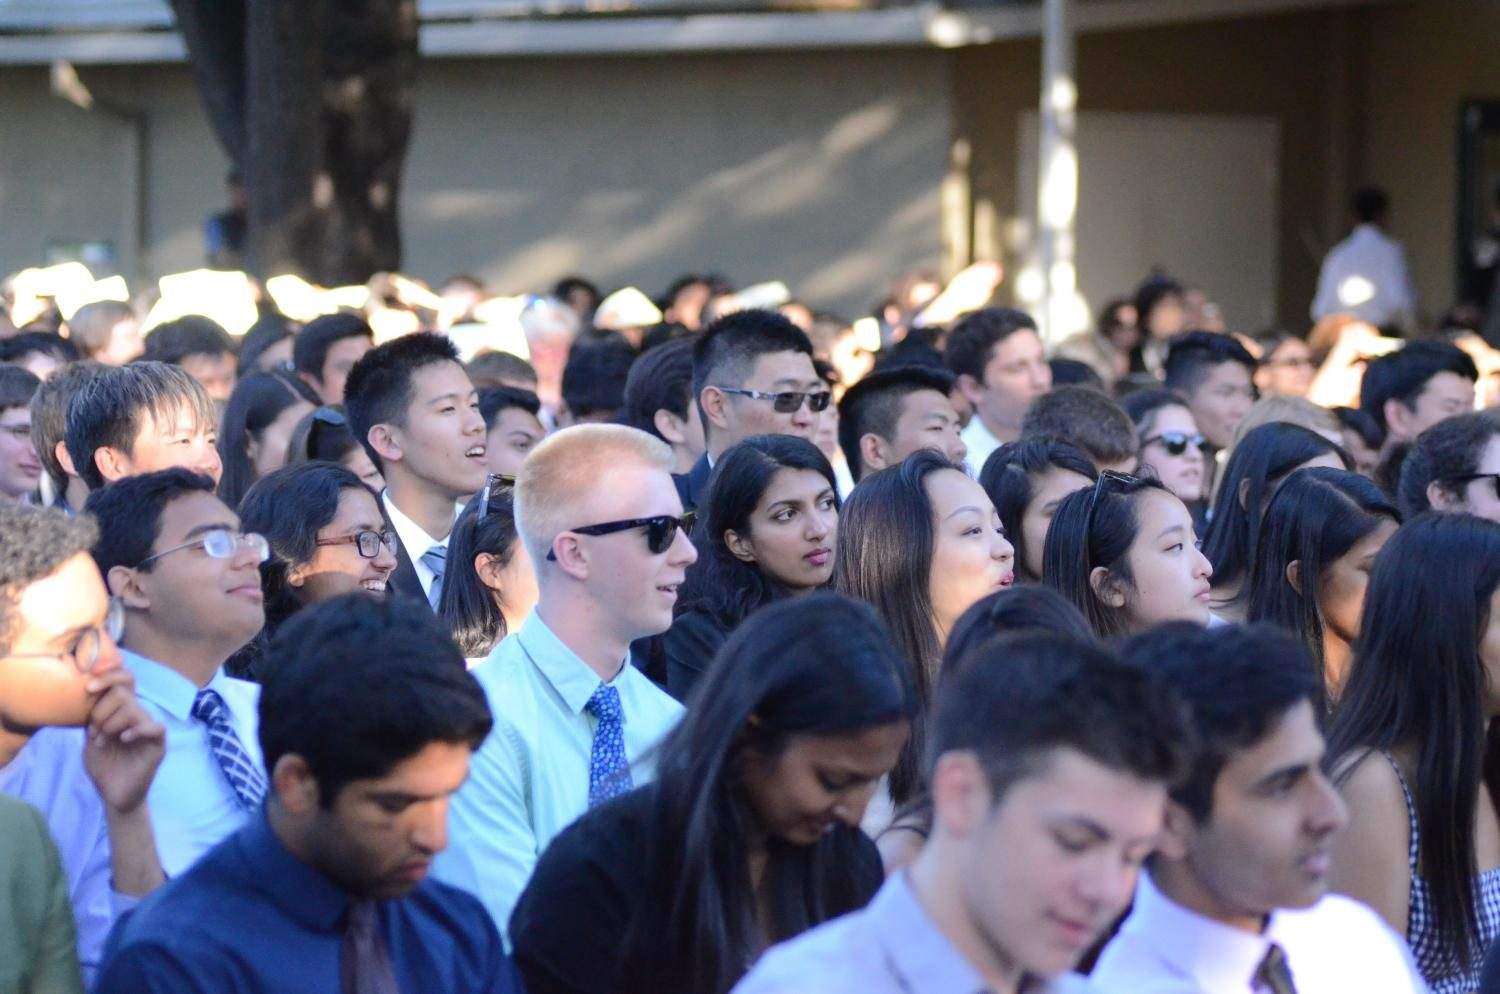 Members+of+the+senior+class+listen+to+Baccalaureate+faculty+speaker+Samuel+Lepler%27s+speech.+Today%27s+Baccalaureate+ceremony+took+place+in+the+Quad+from+6%3A30+to+7%3A30+p.m.